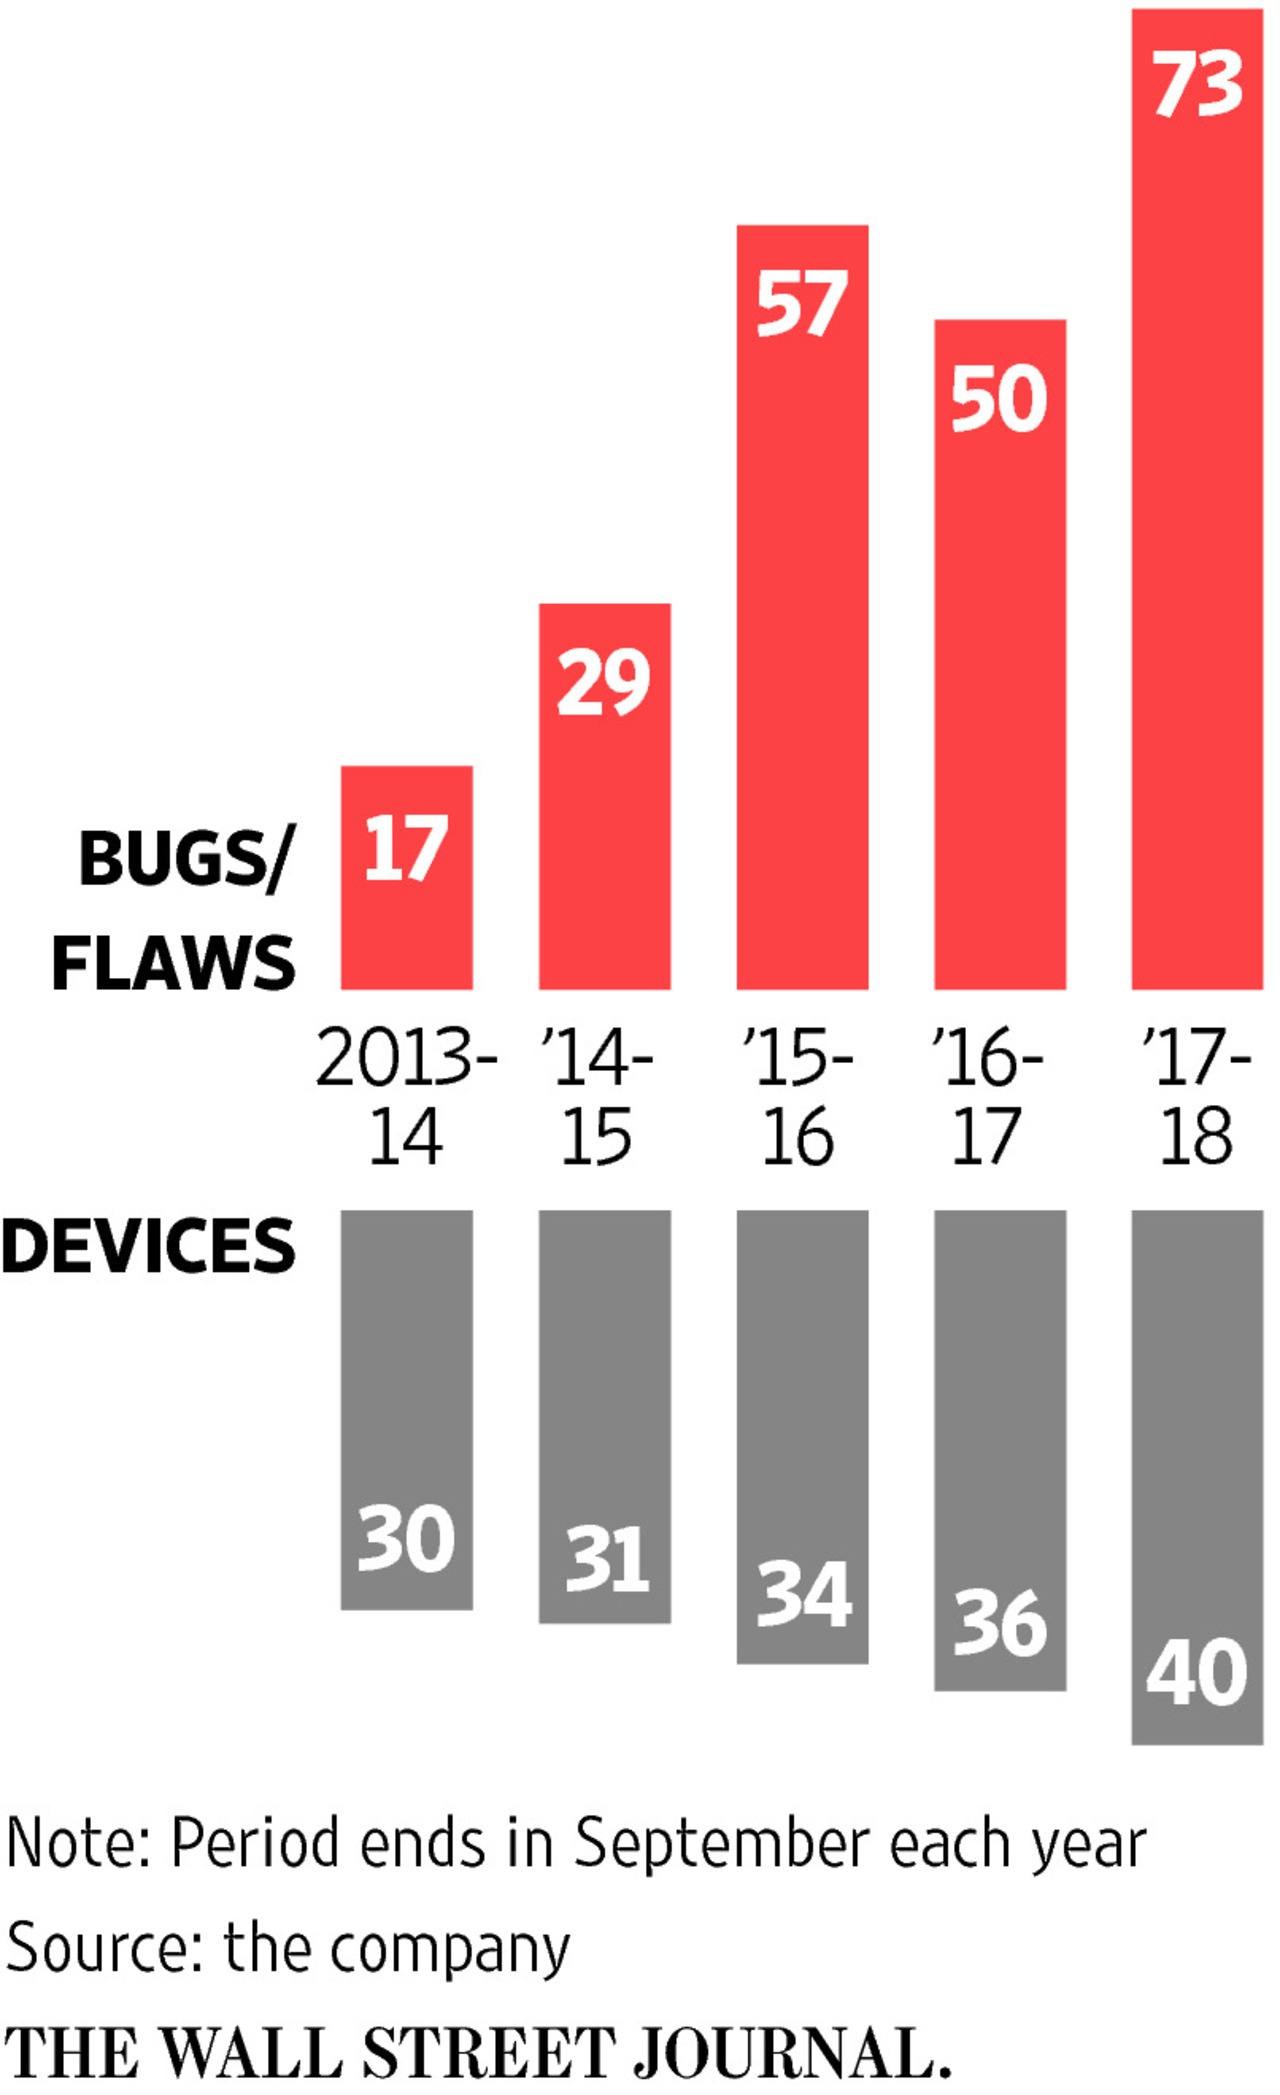 Apple Devices and Bugs over time